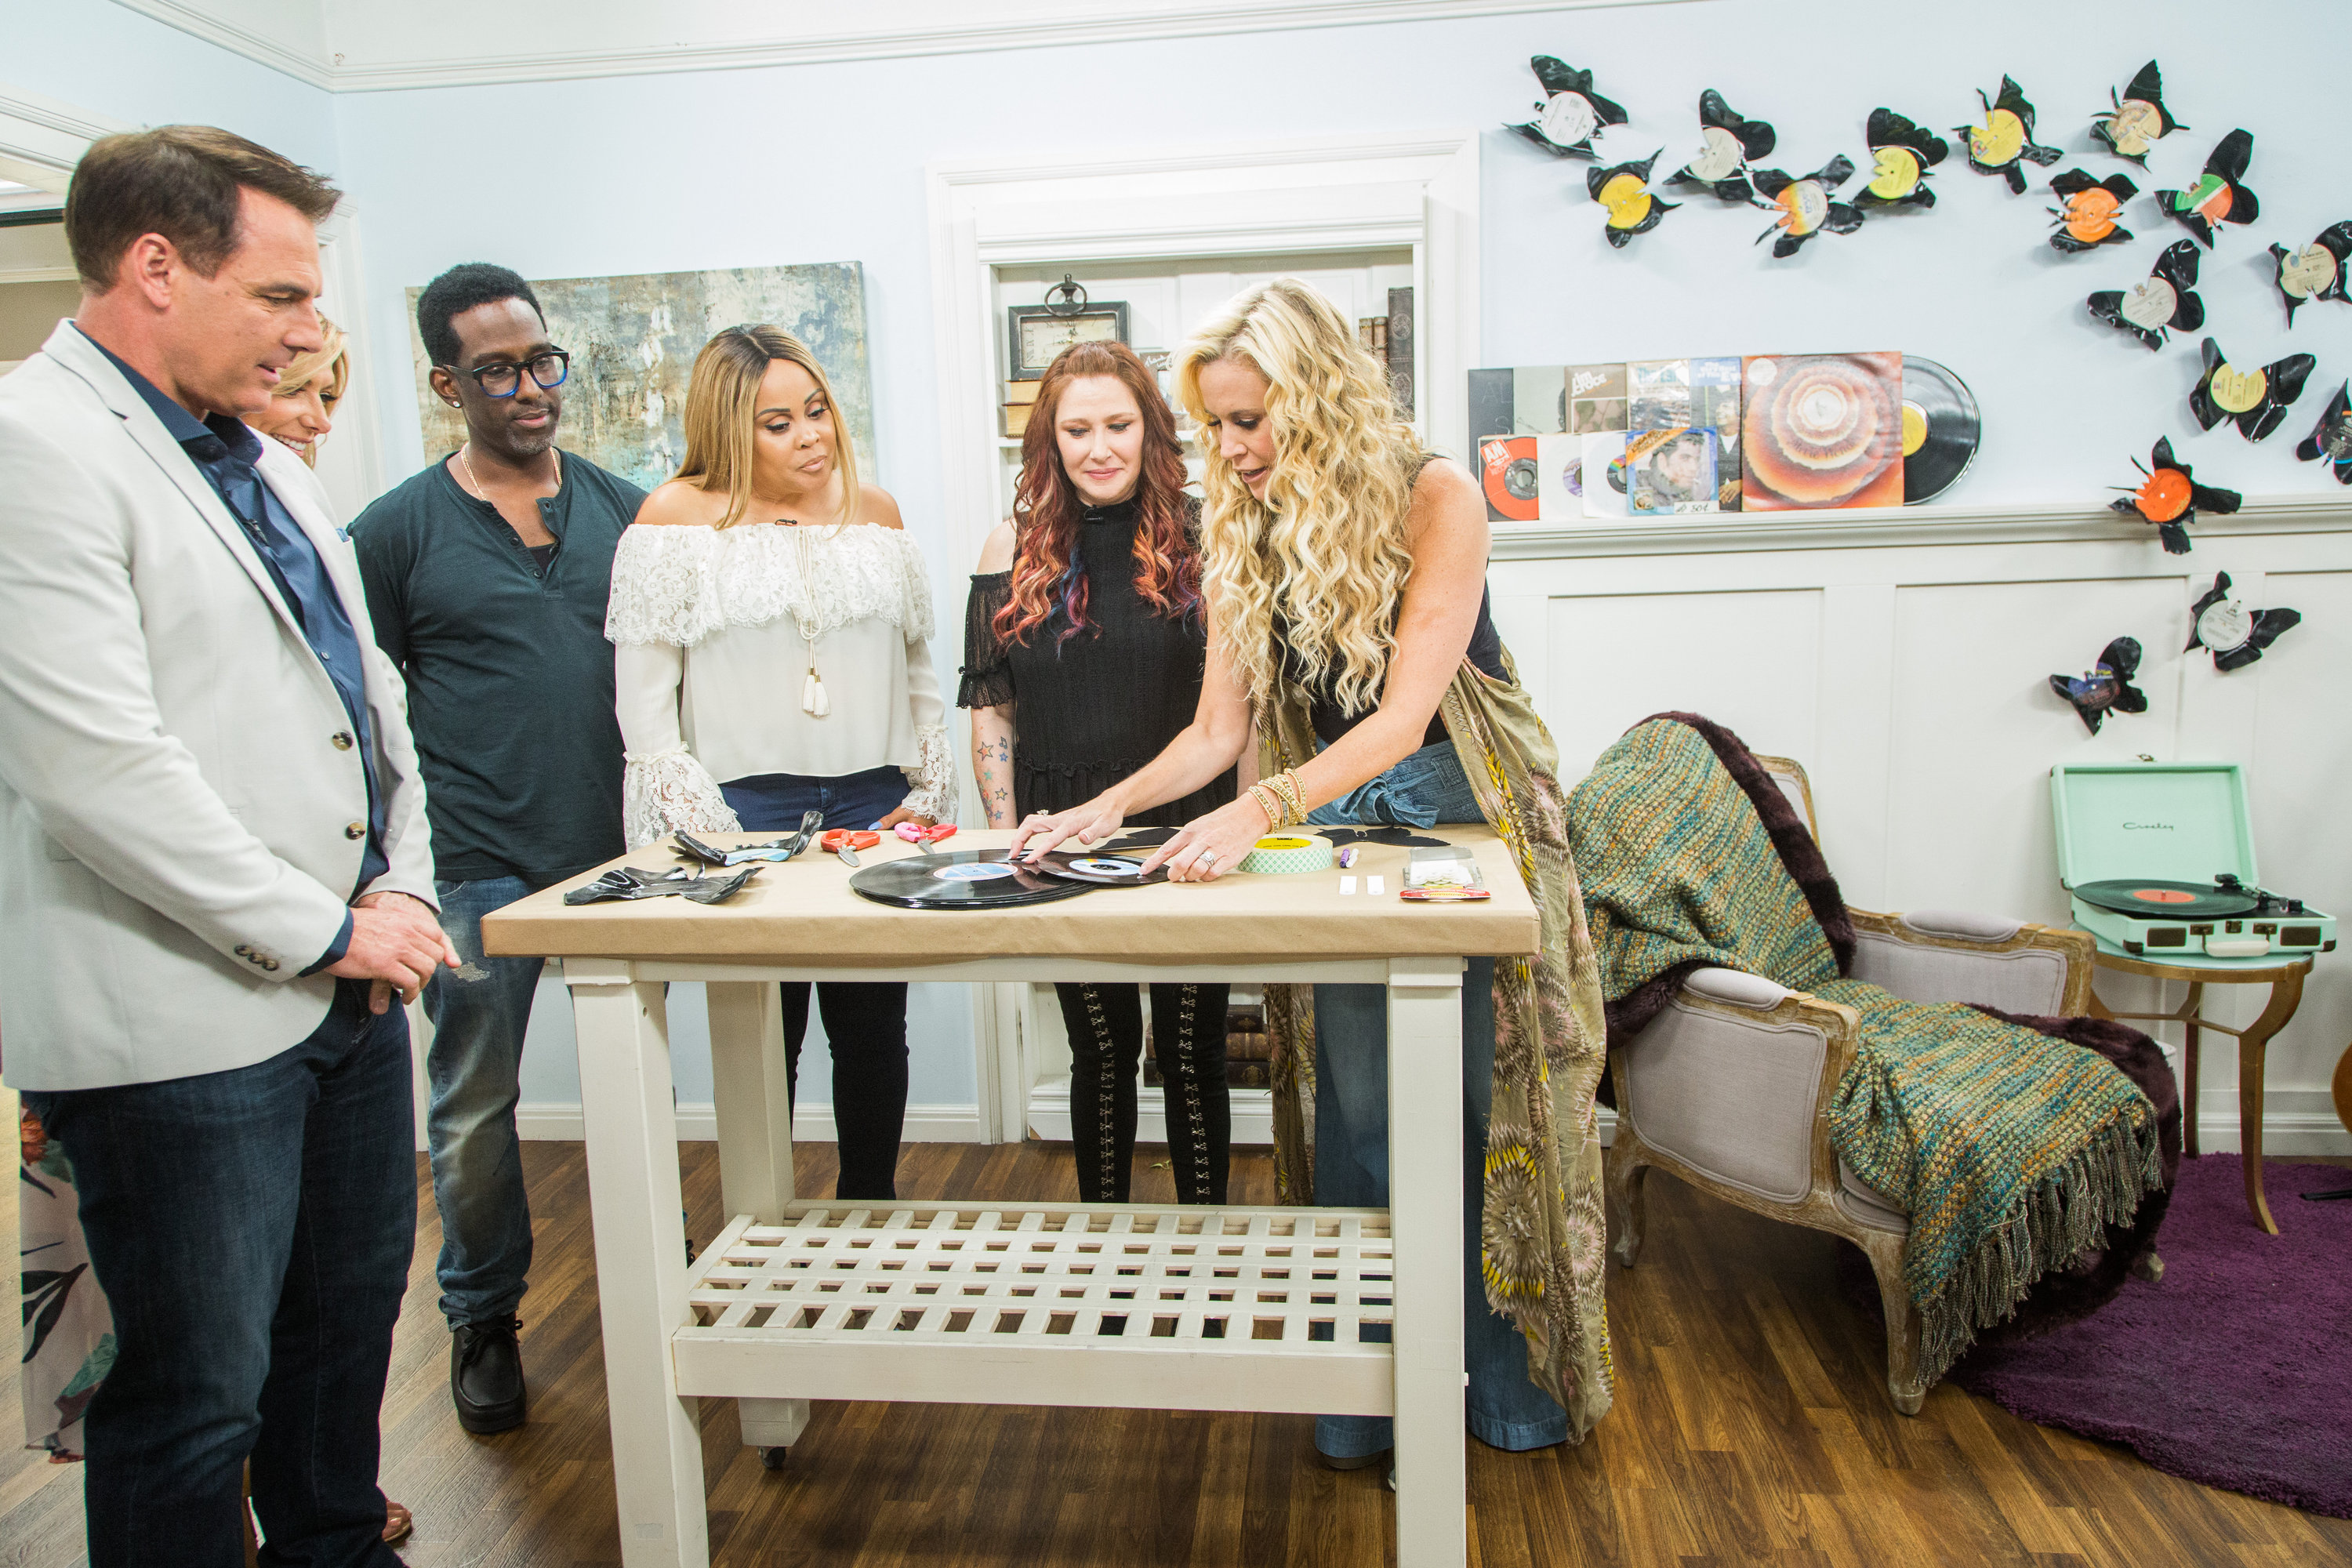 Diy Butterfly Records Home Amp Family Hallmark Channel